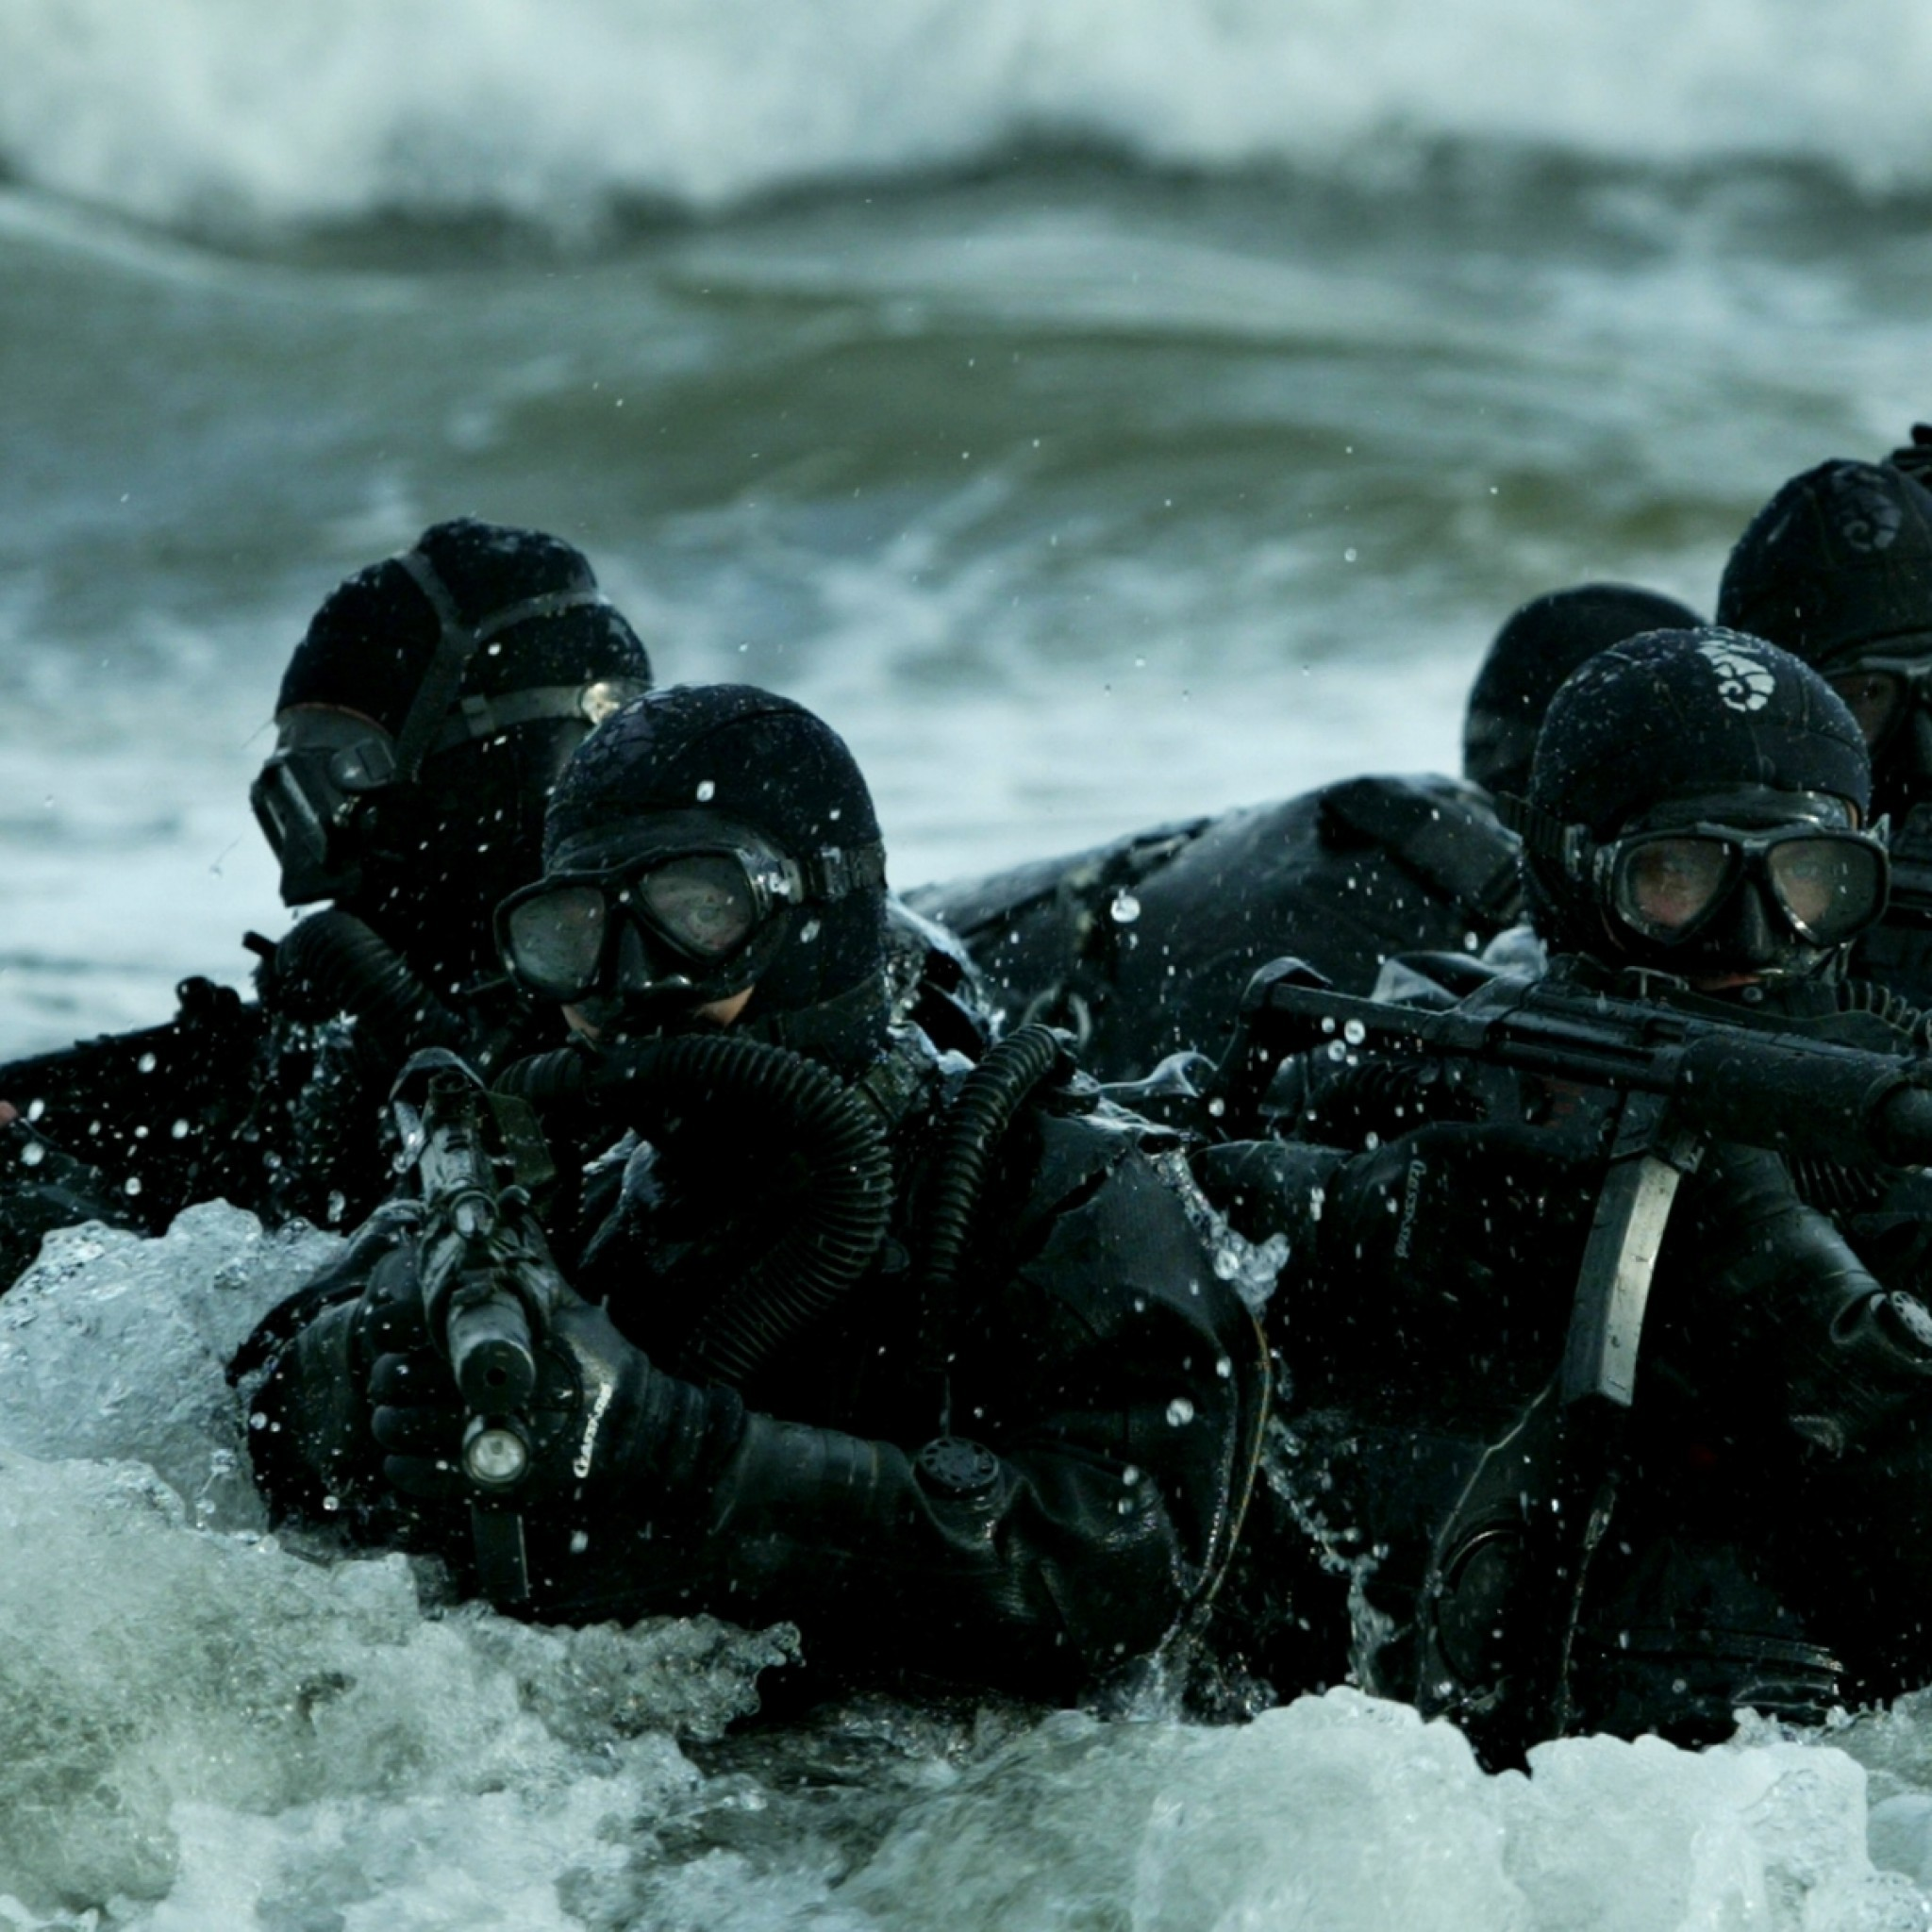 2048x2048 Army Ranger Wallpaper Iphone Army military navy seals all wallpapers